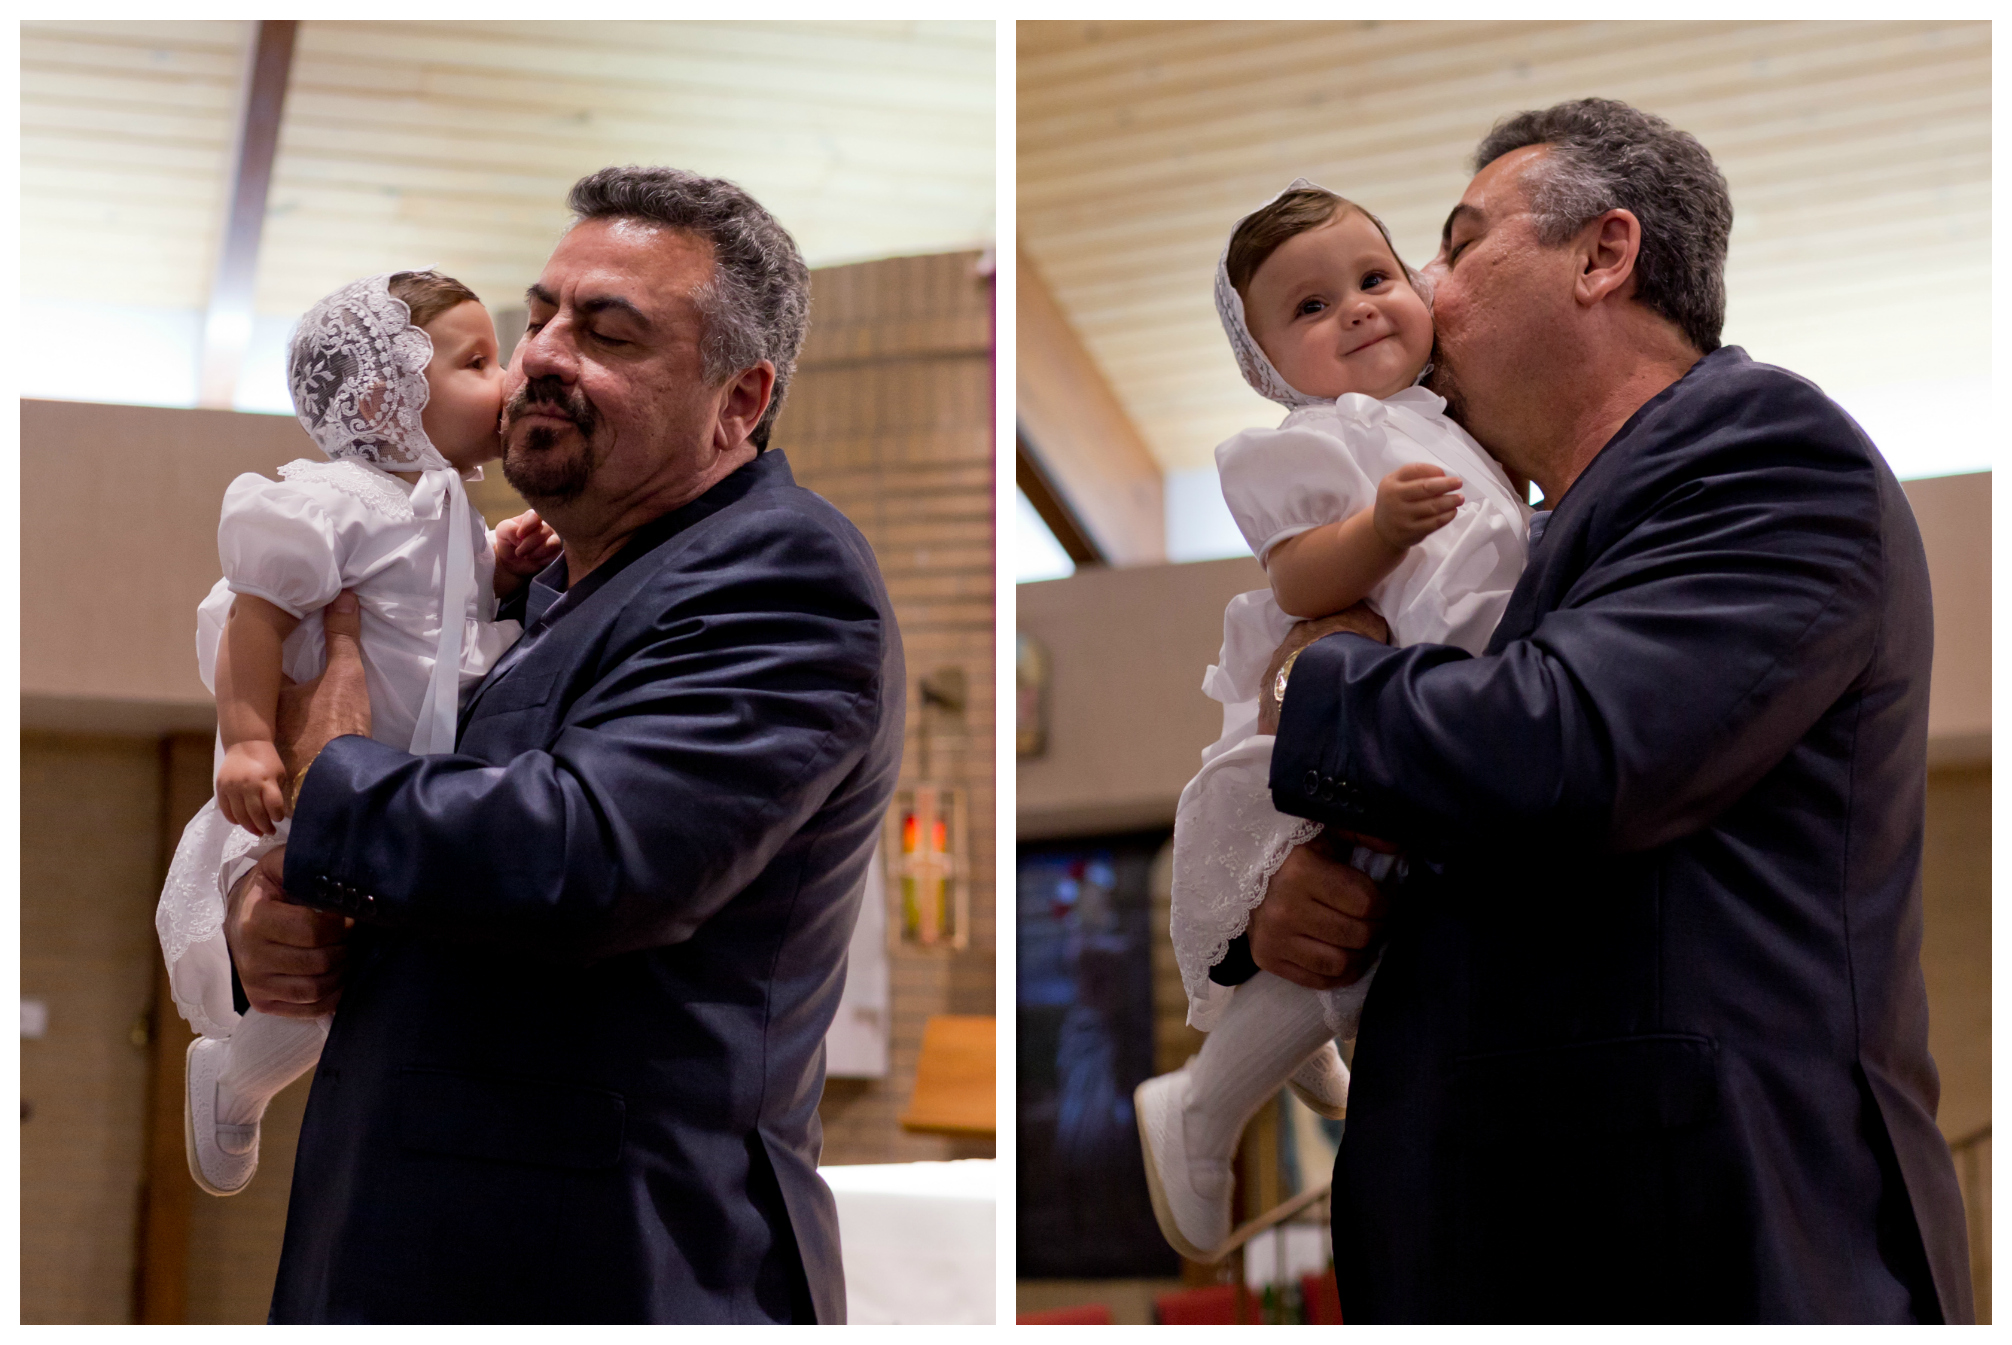 Hispanic grandfather and little girl in christening gown, kisses on cheek